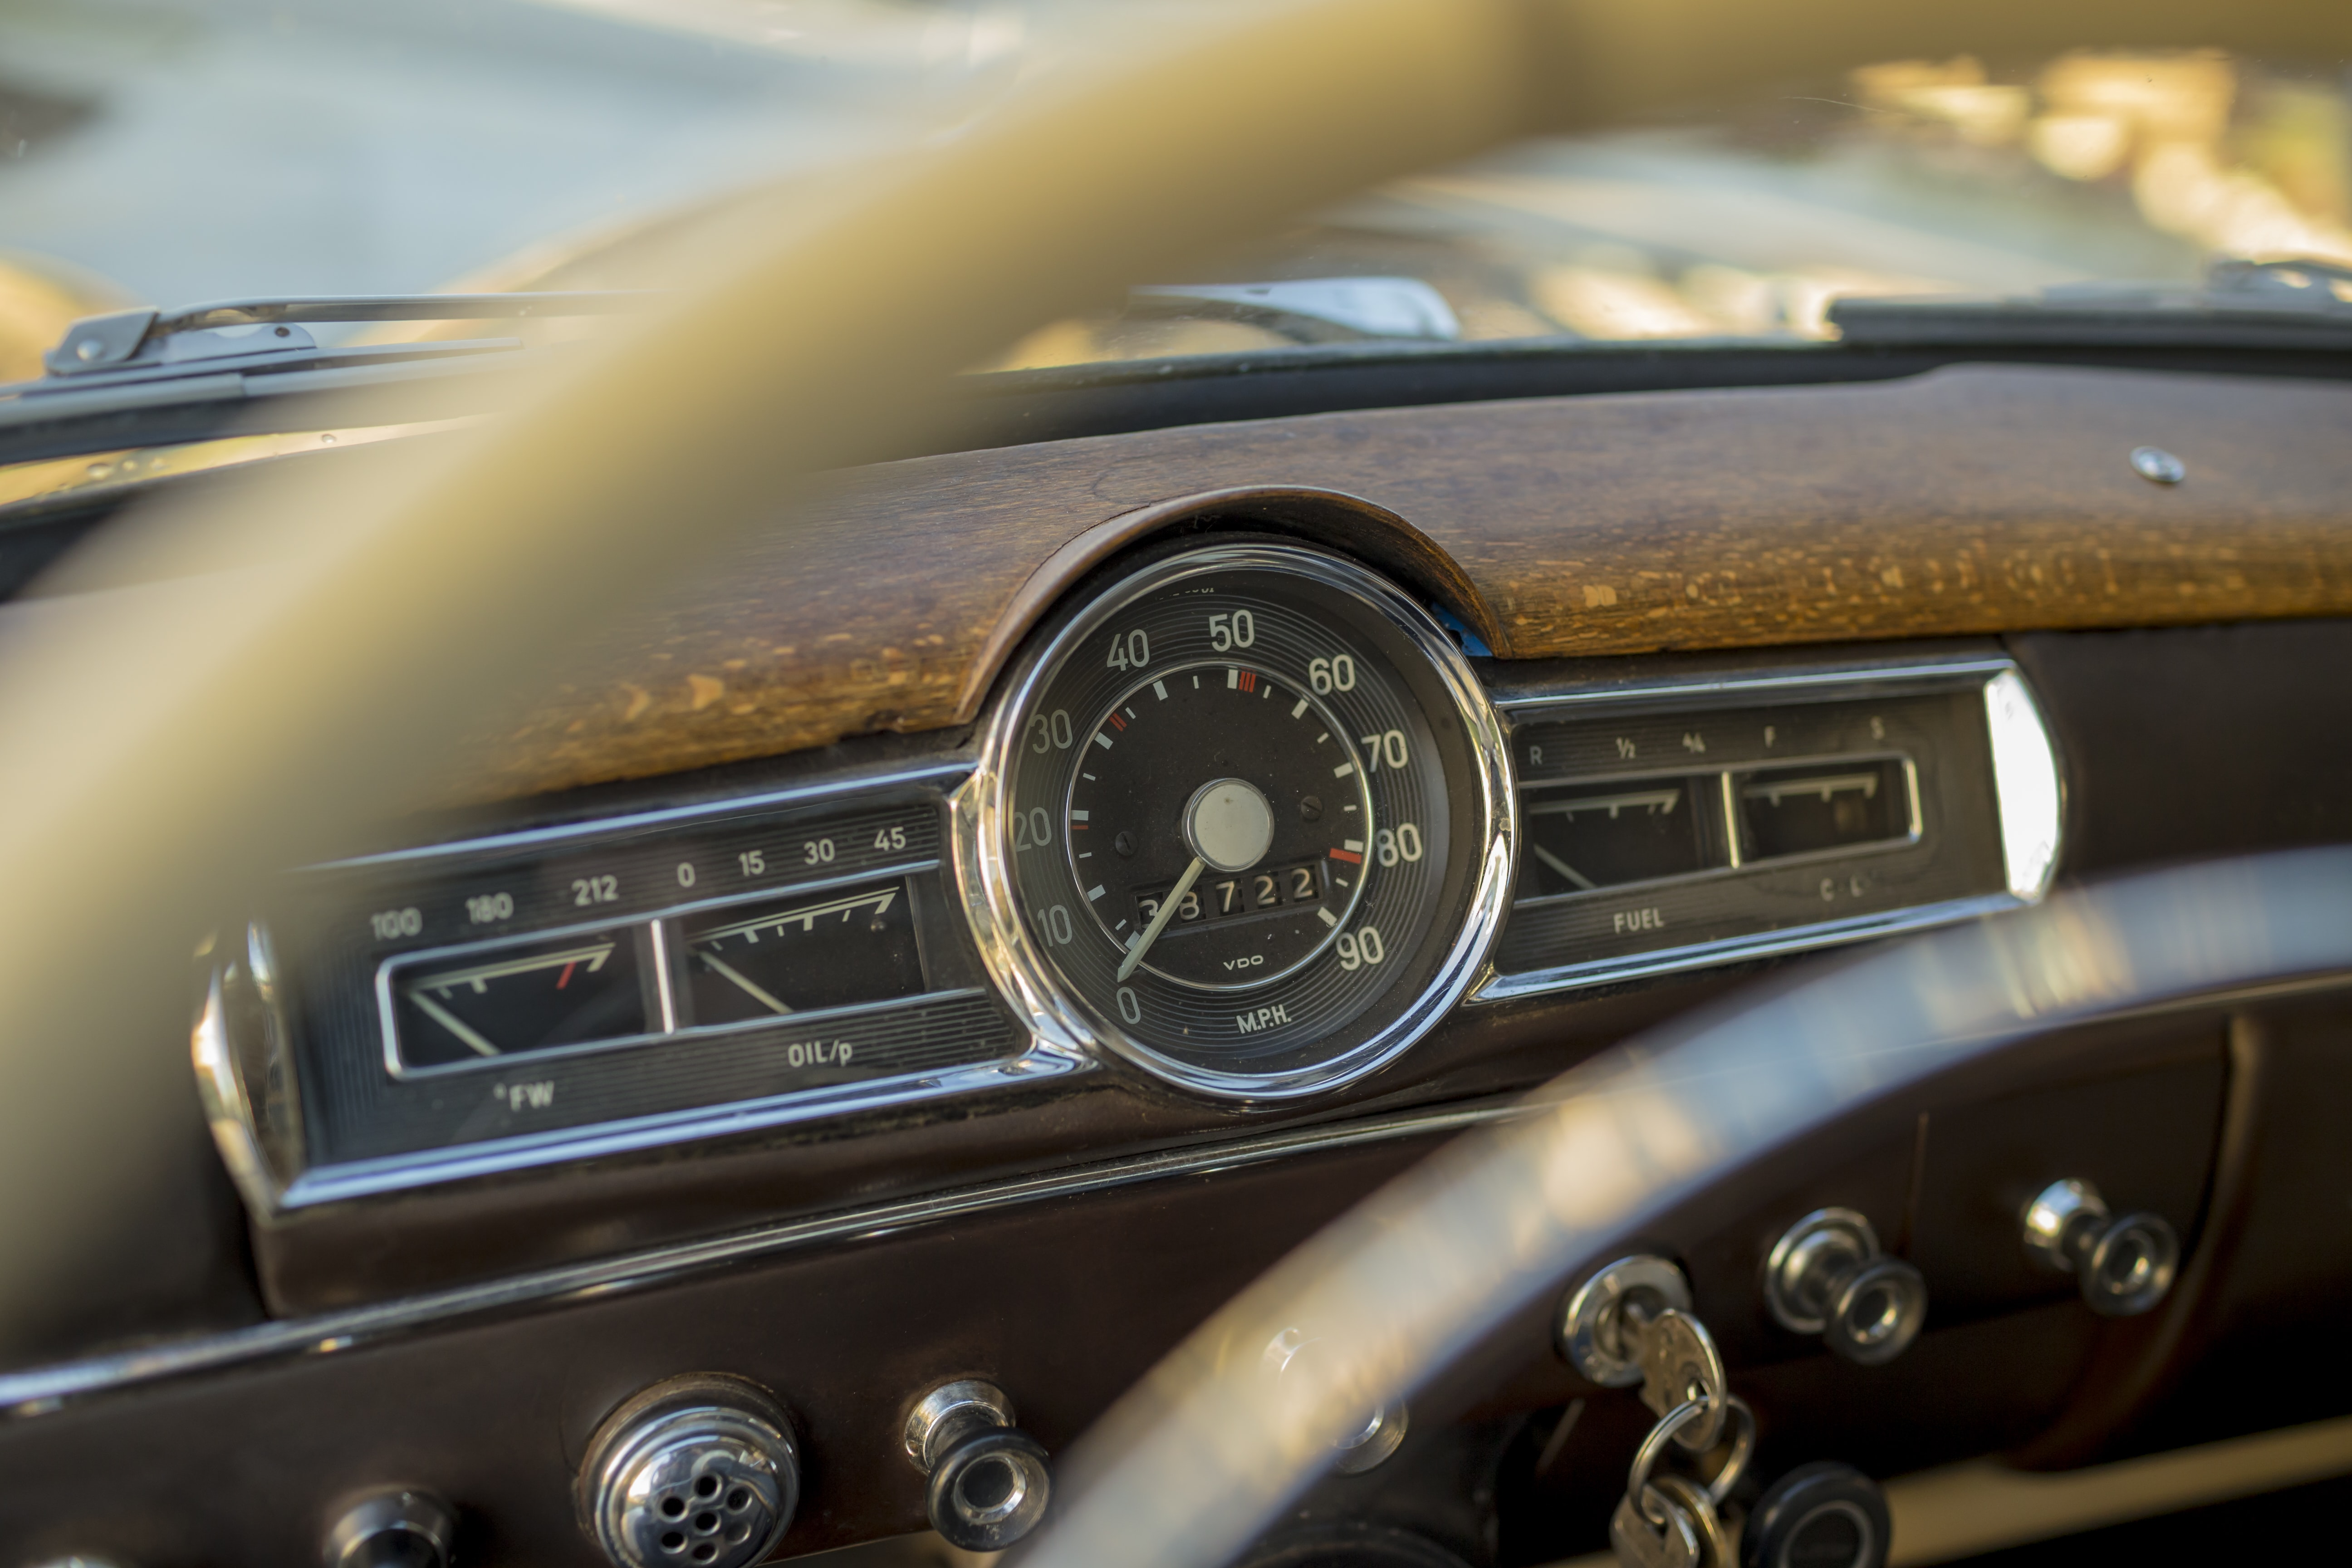 Close up of the dashboard of a vintage car.